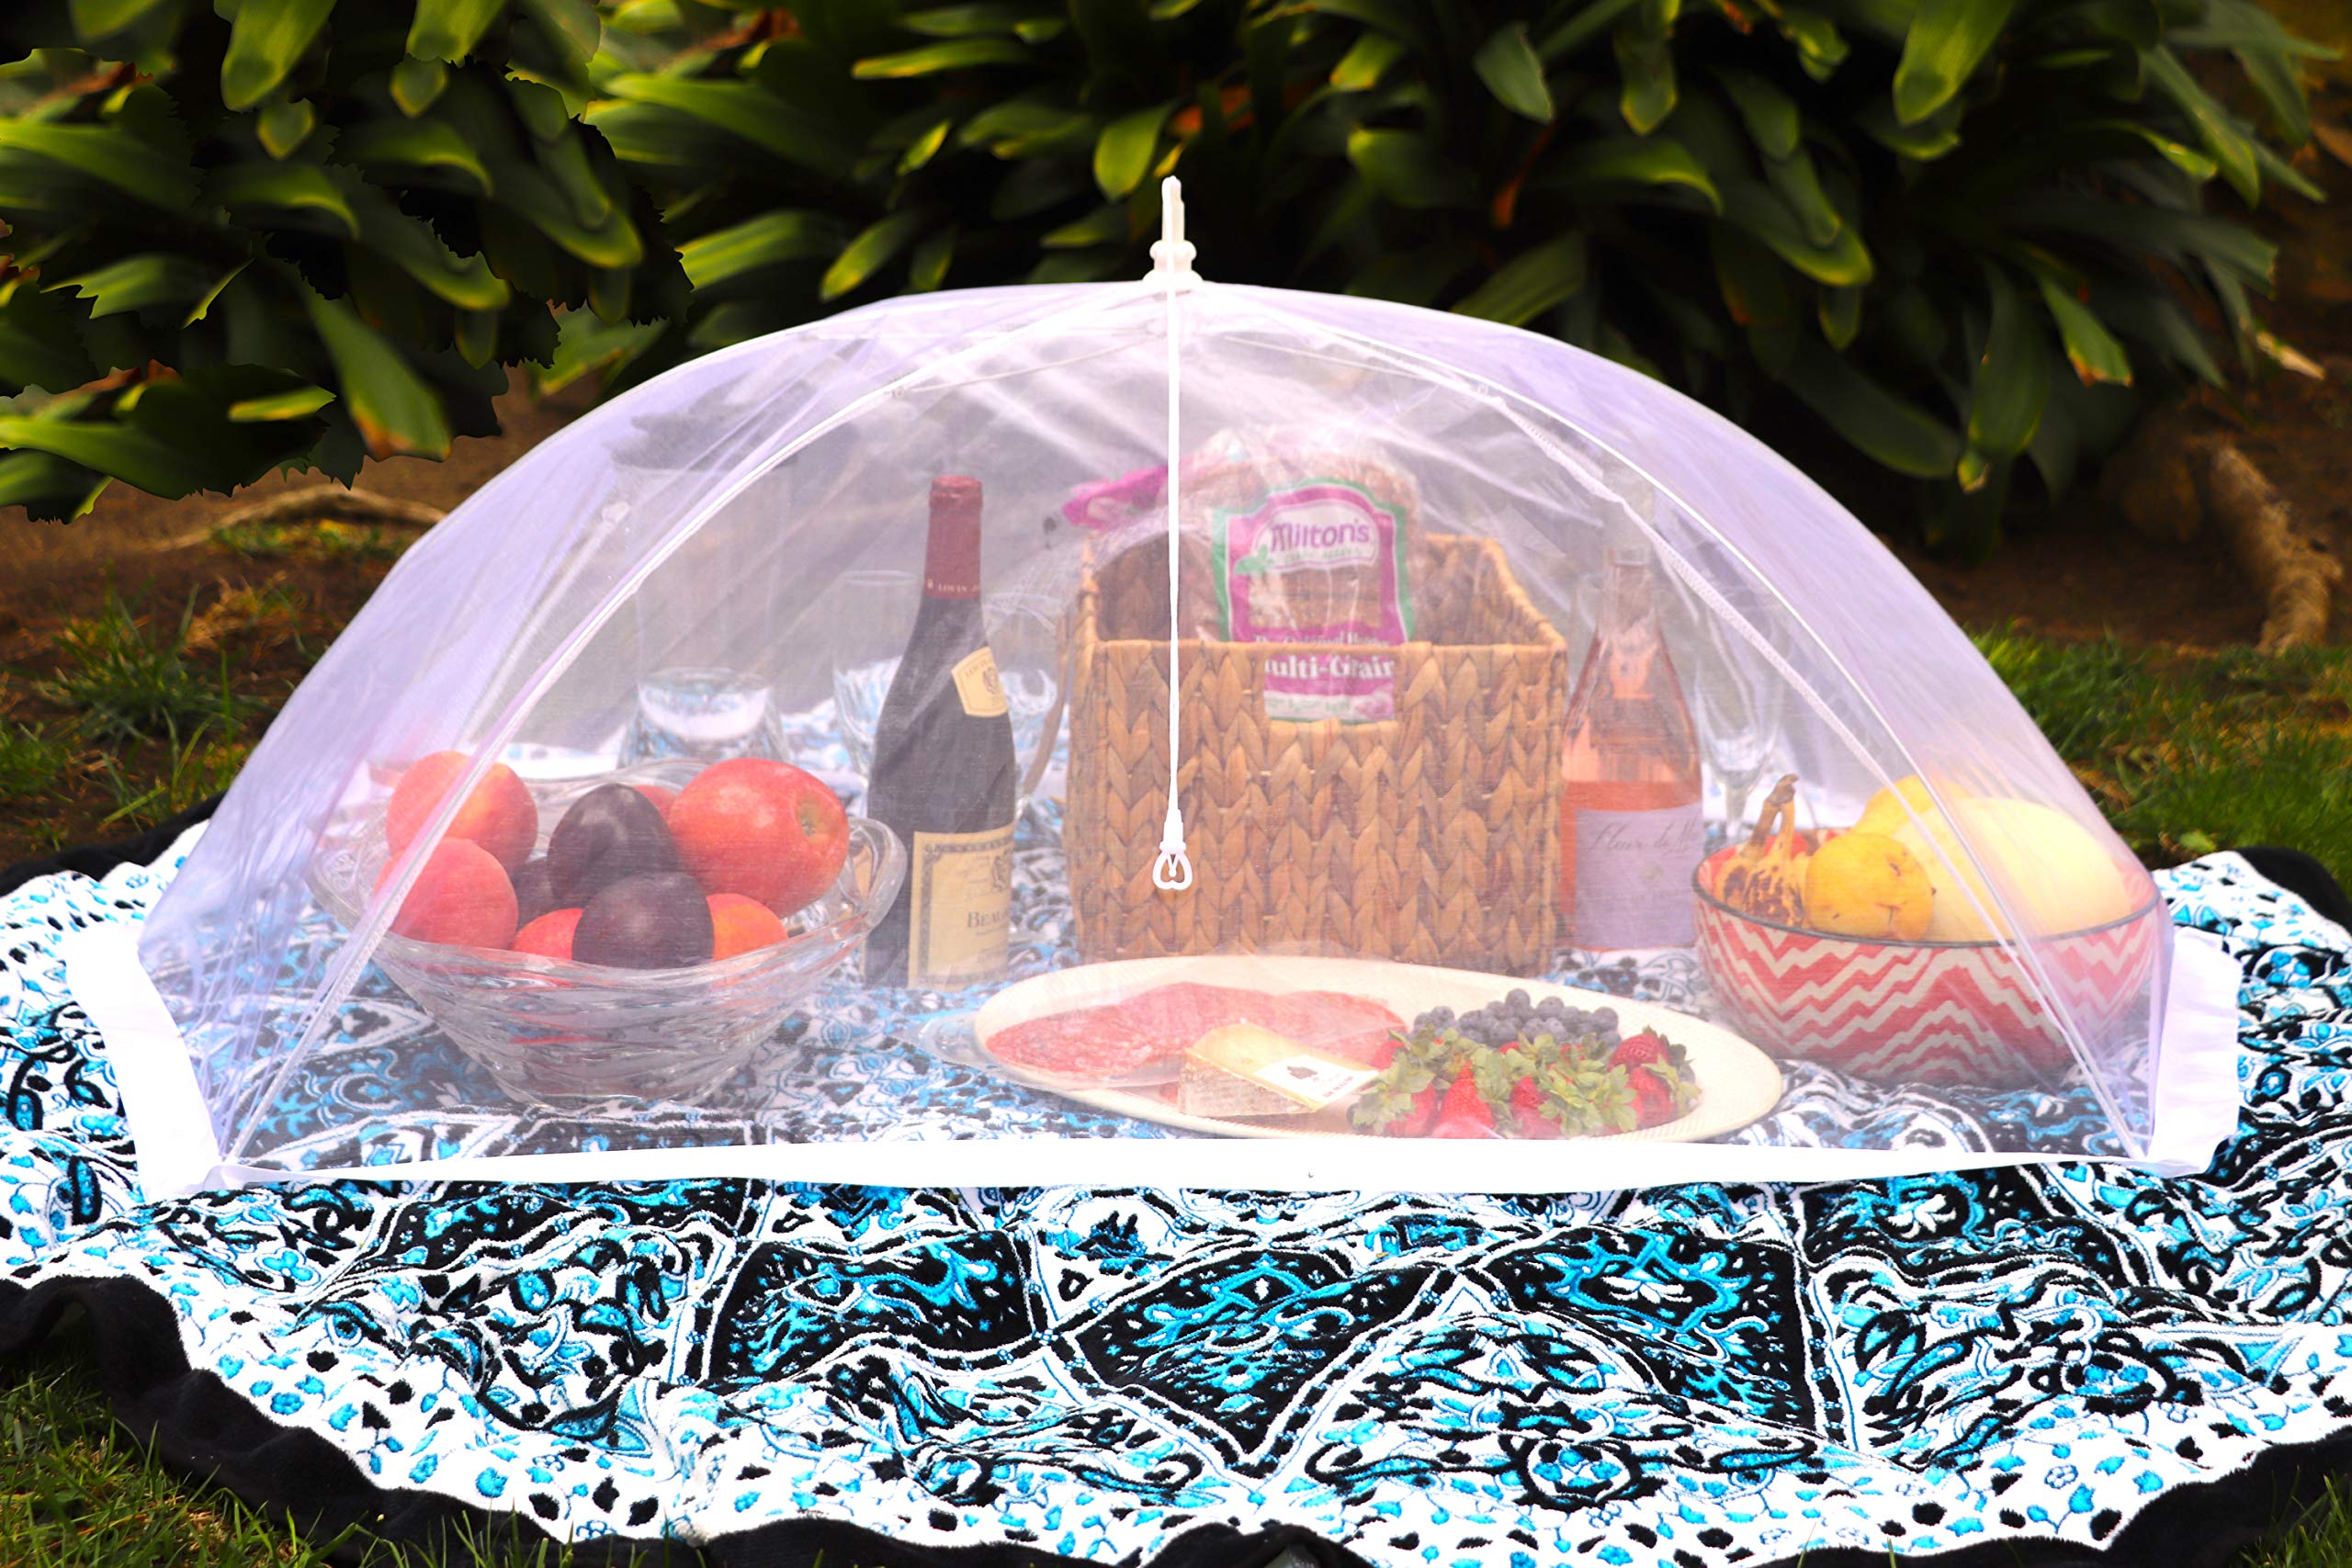 (Set of 2) Zakara 100% Organza Mesh Net Extra Large (49'' x 27'') Food Cover Tents for Picnics and BBQs to Keep Insects, Bugs, and Flies Away | Comes with Nylon Case for Easy Storage & Travel